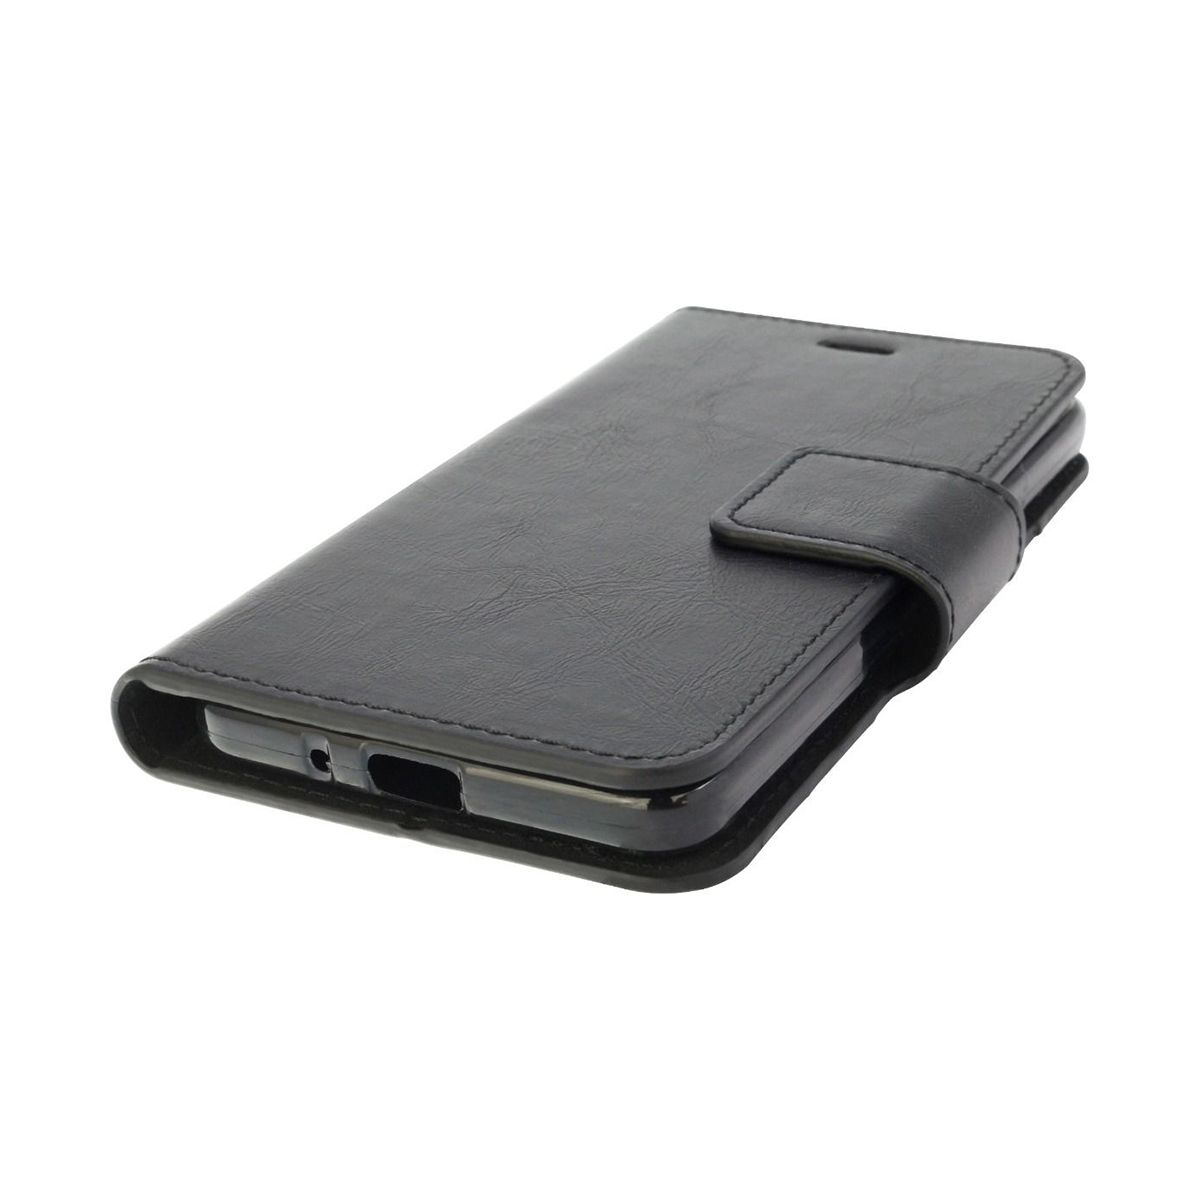 Bond St. Wallet Folio Case - Xperia XZ1